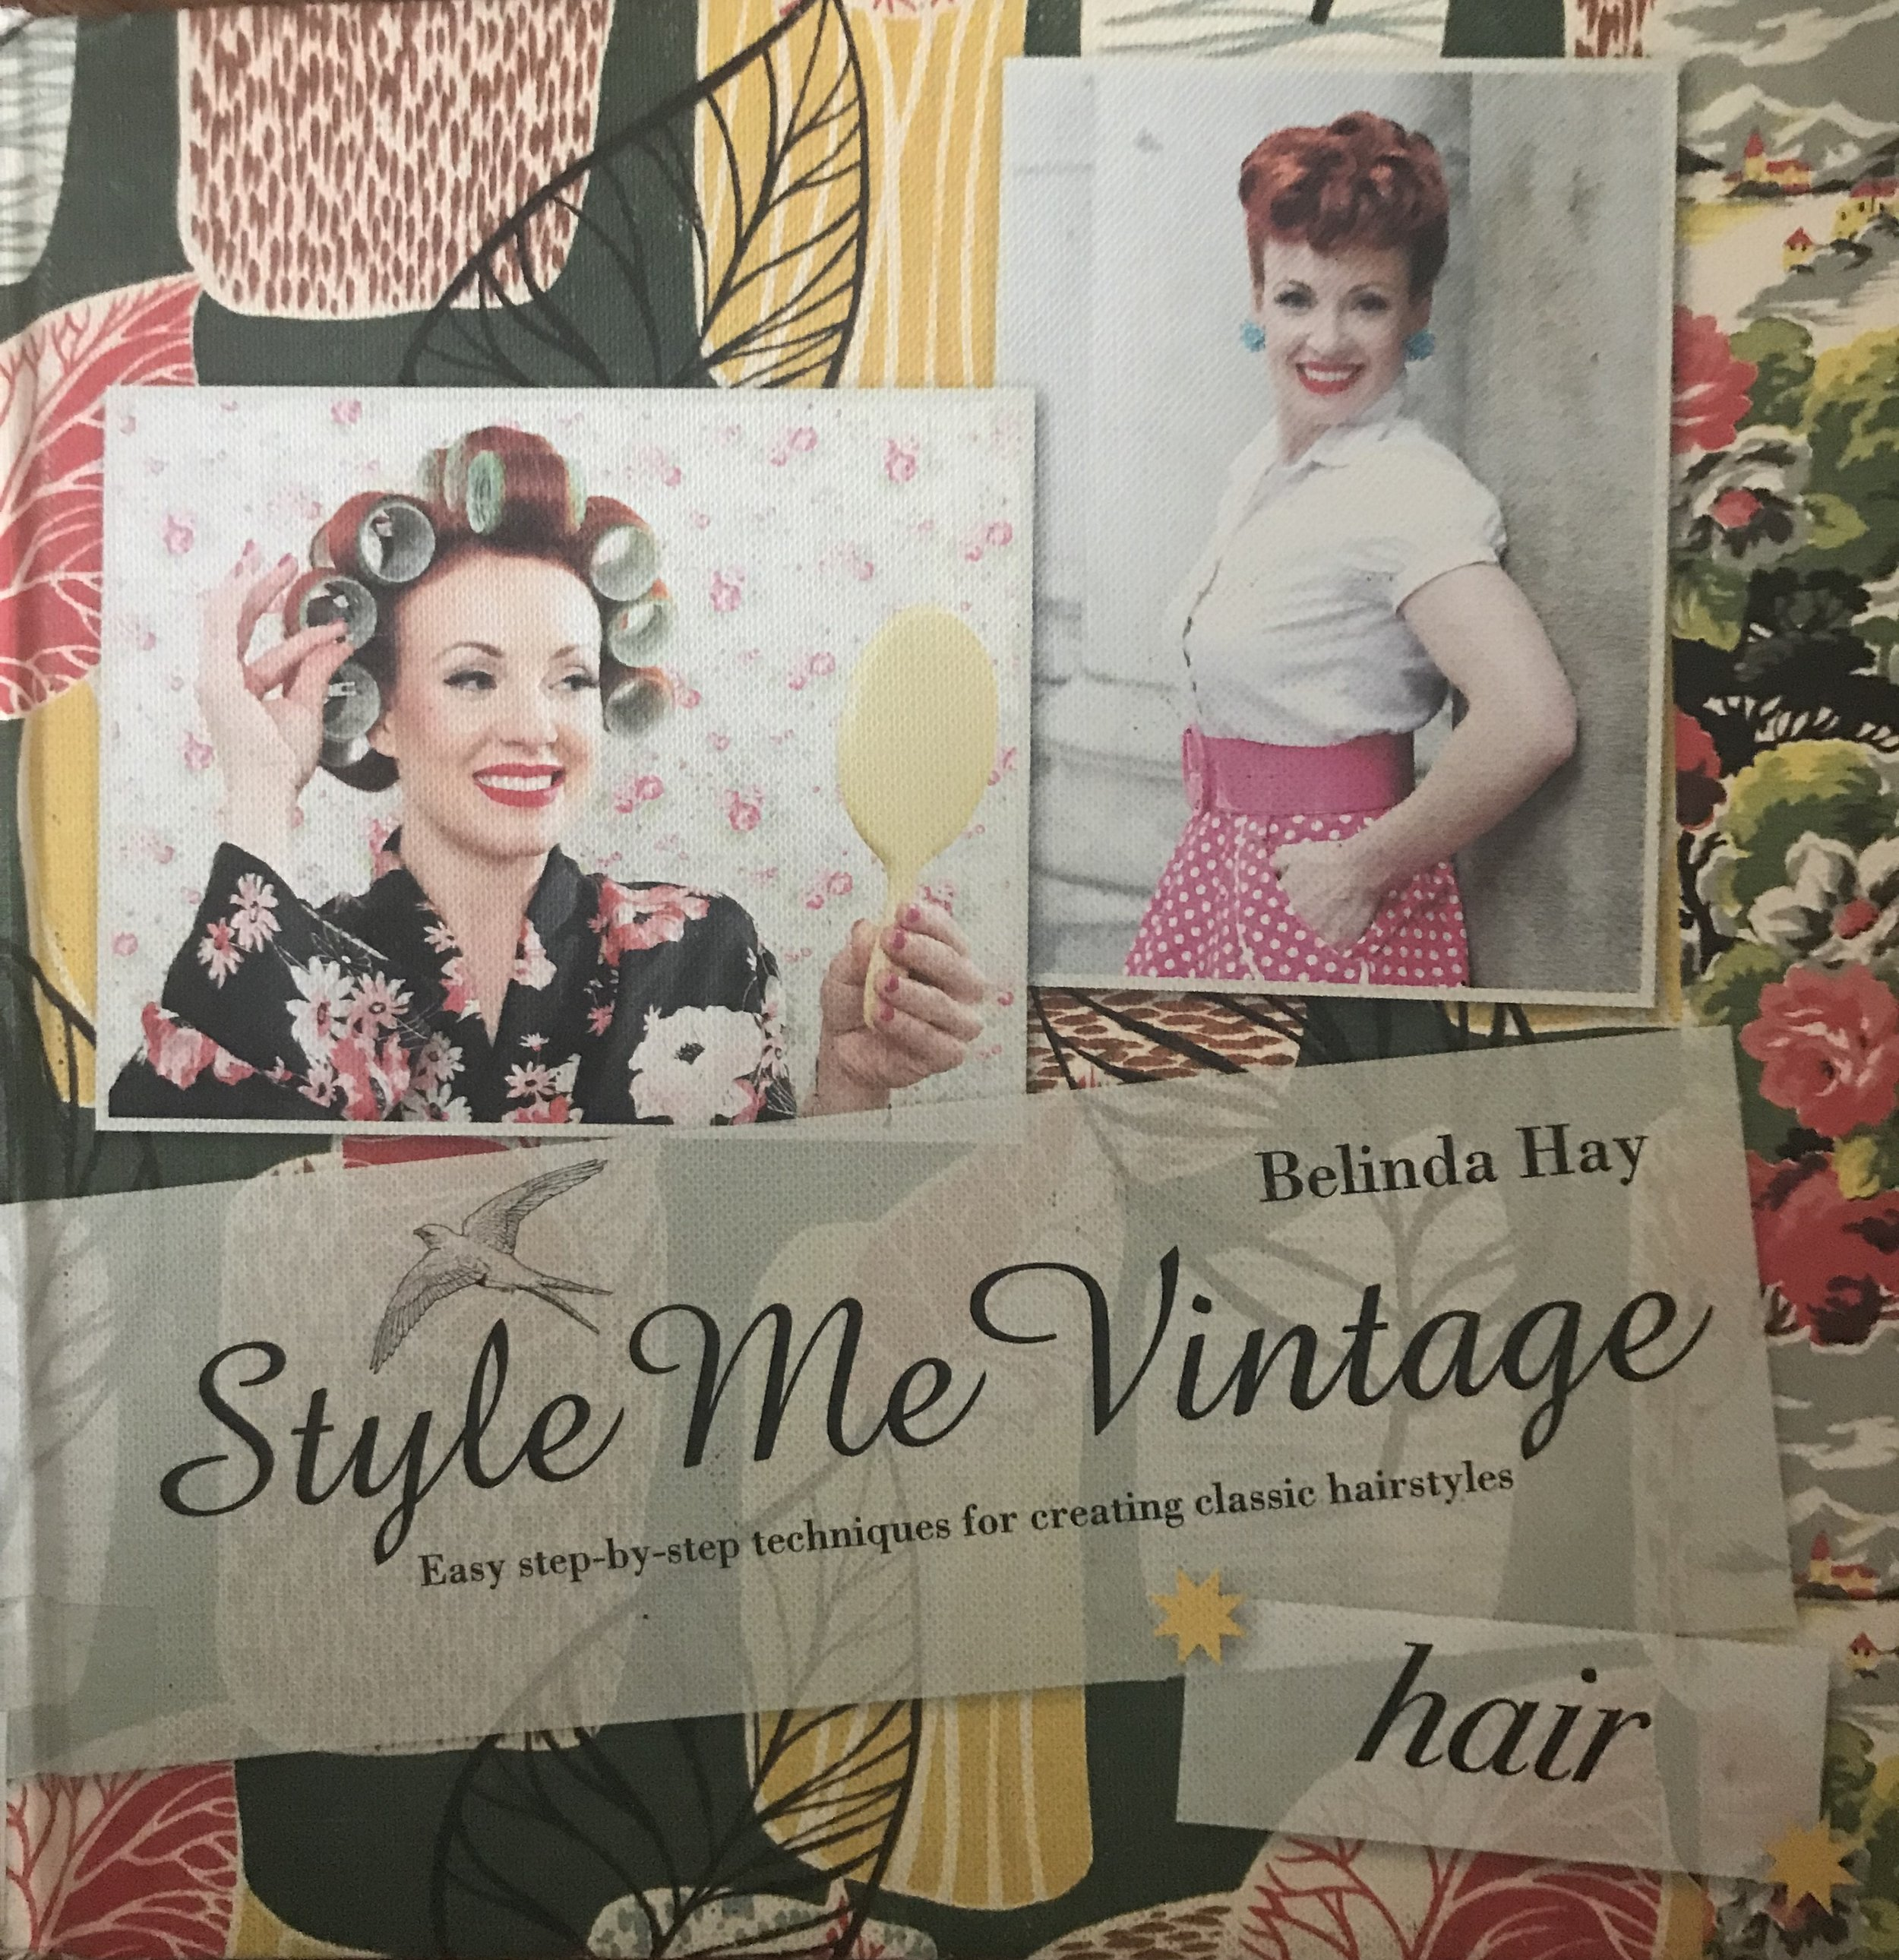 If you have a fun party coming up for any reason this book can provide you with tons of inspiration! Pincurls, beehives, roller sets. The higher the hair the closer to God.